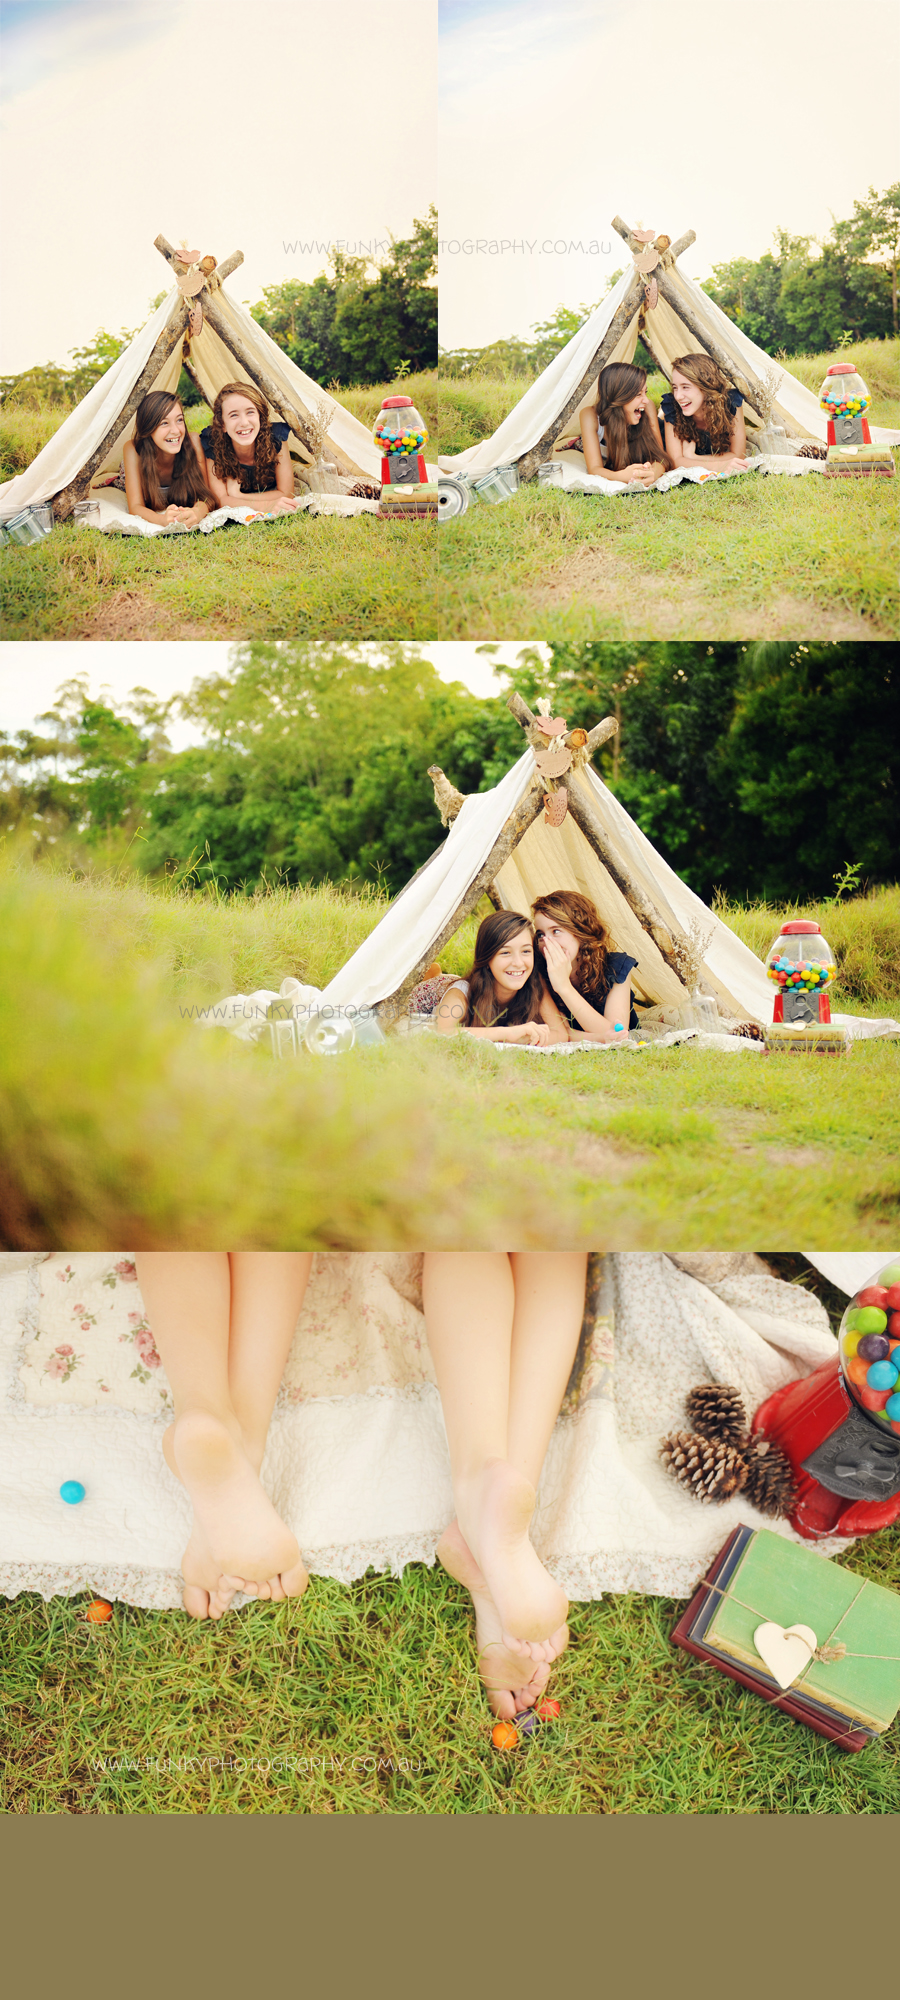 girls in a vintage style tent with gumball machine